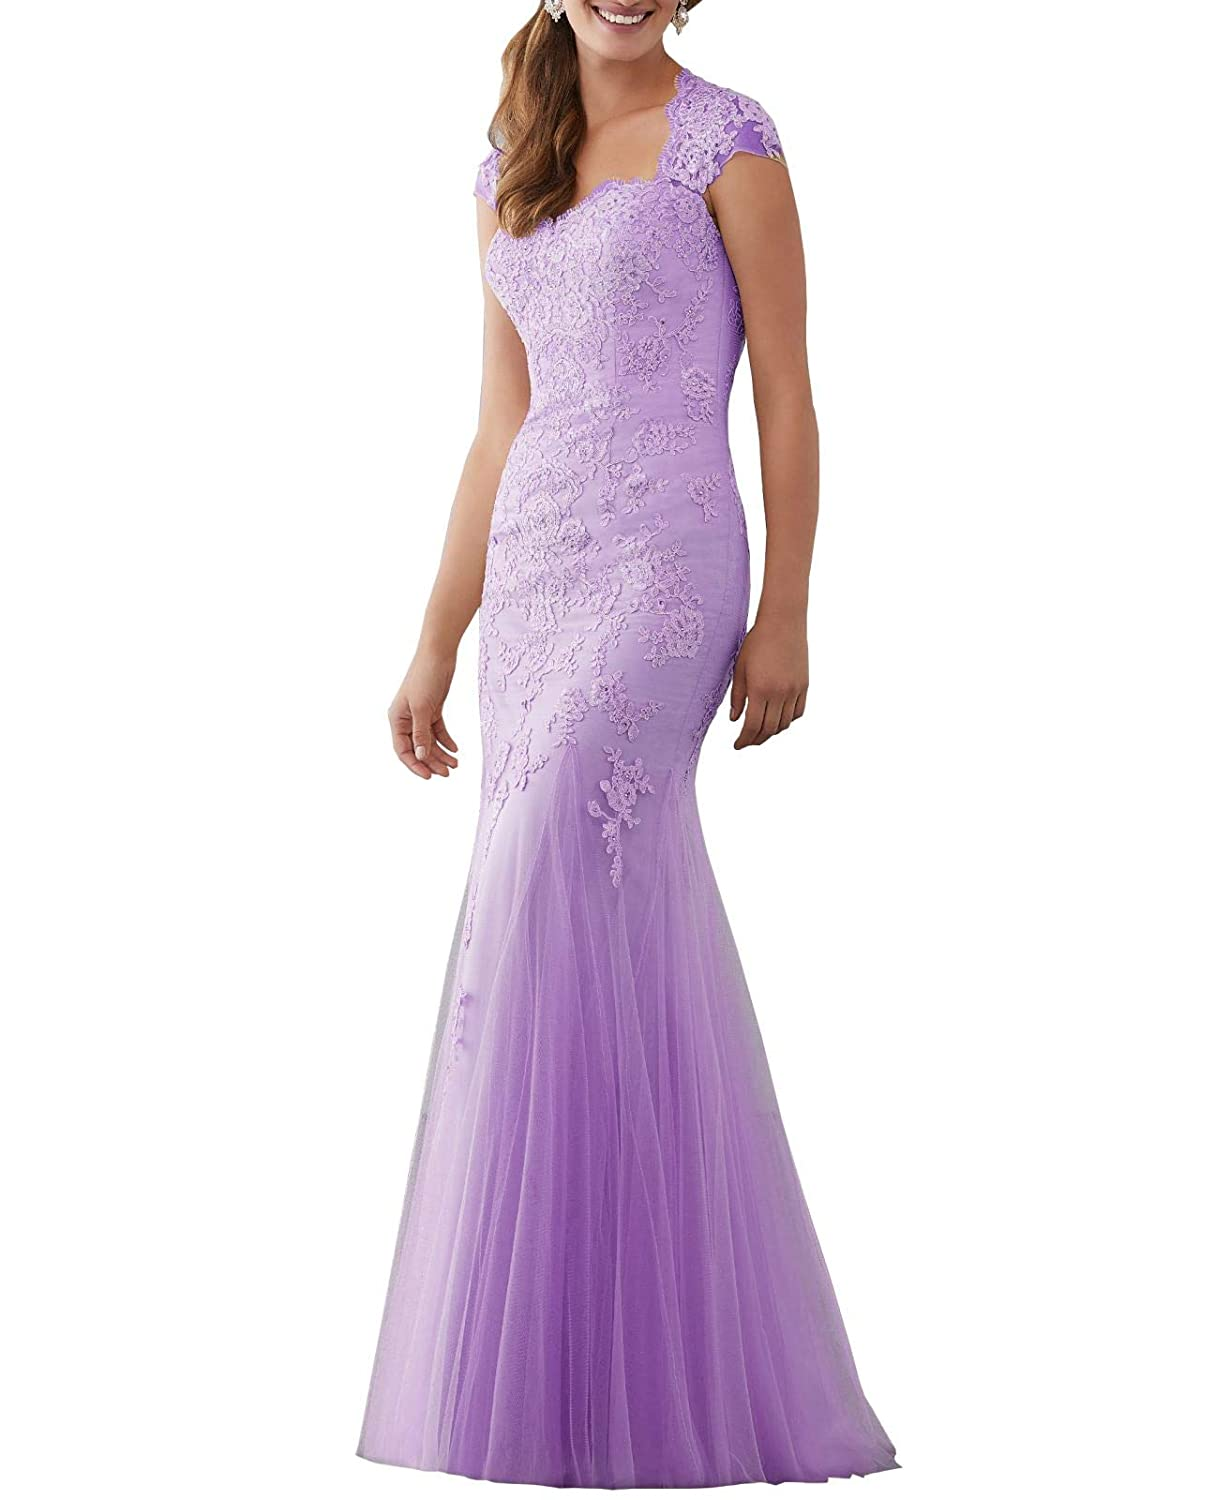 Light Purple Aishanglina Caps Shoulder Embroidered Appliques Beaded Evening Gown Floor Length Party Tulle Dress